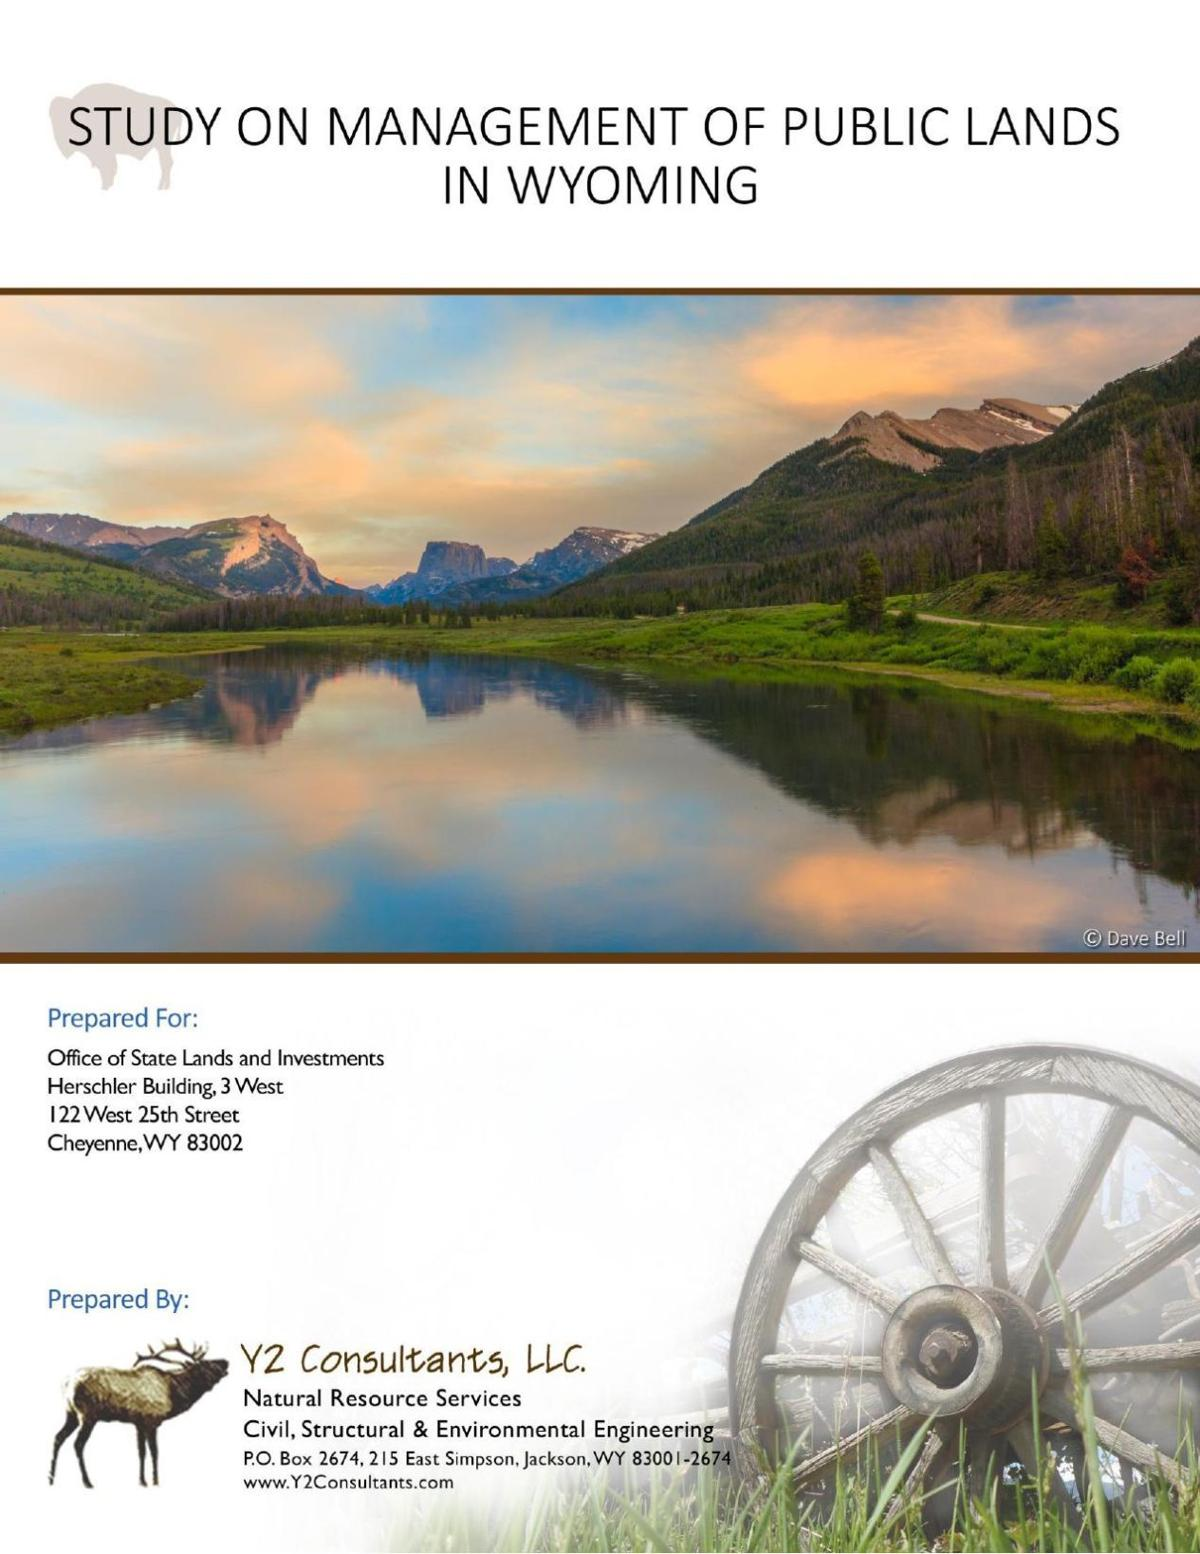 Study on Management of Public Lands in Wyoming